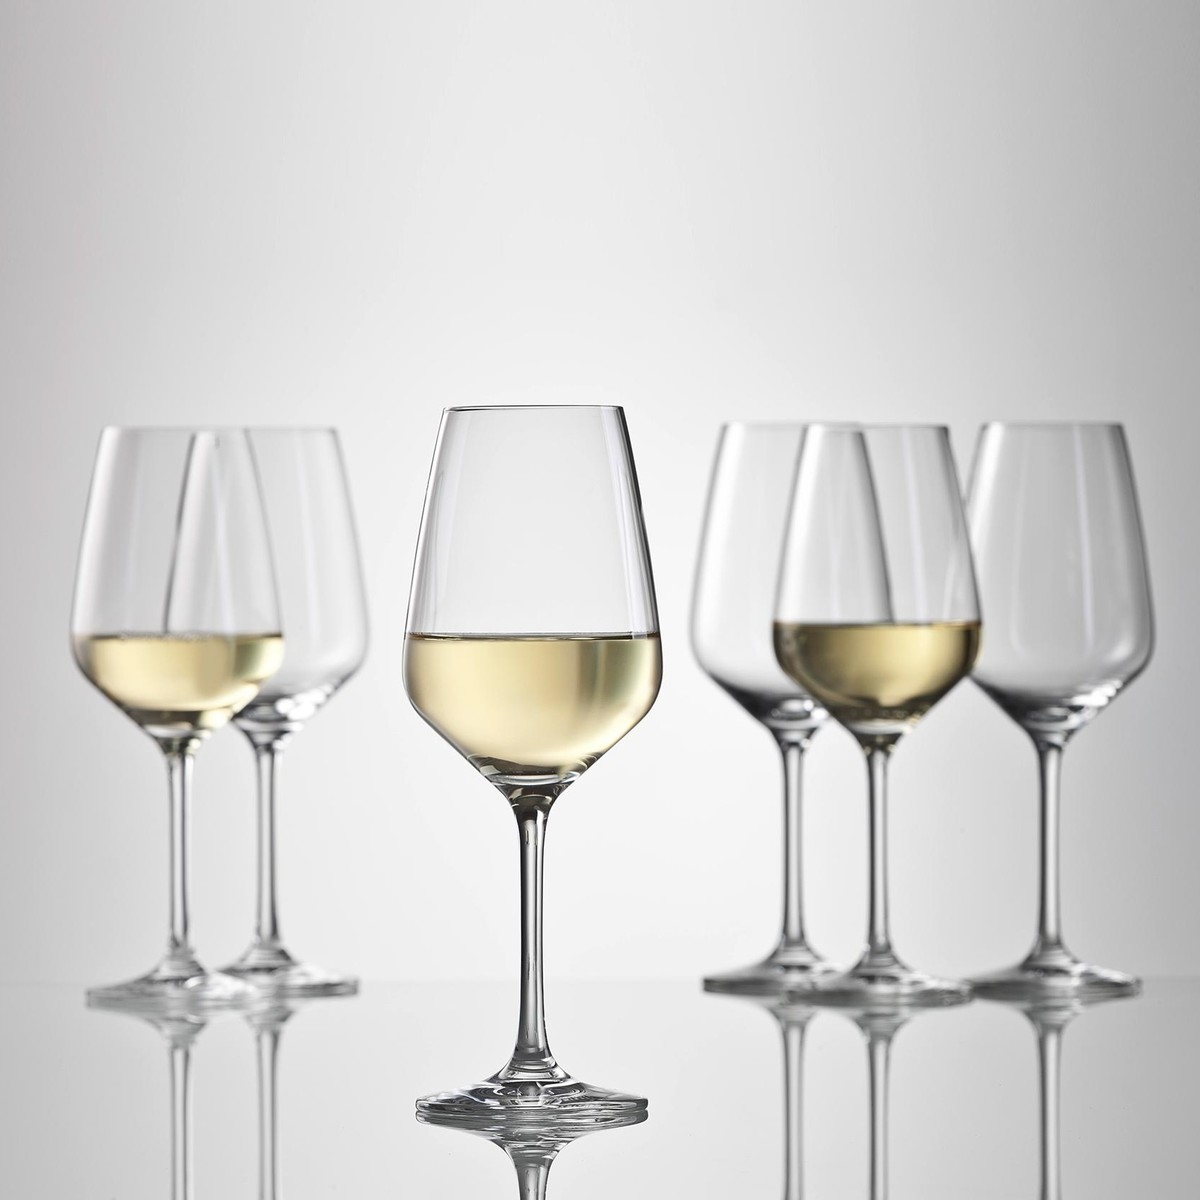 Schott Zwiesel Wine Glasses | Schott Glasses | Pottery Barn Wine Glasses